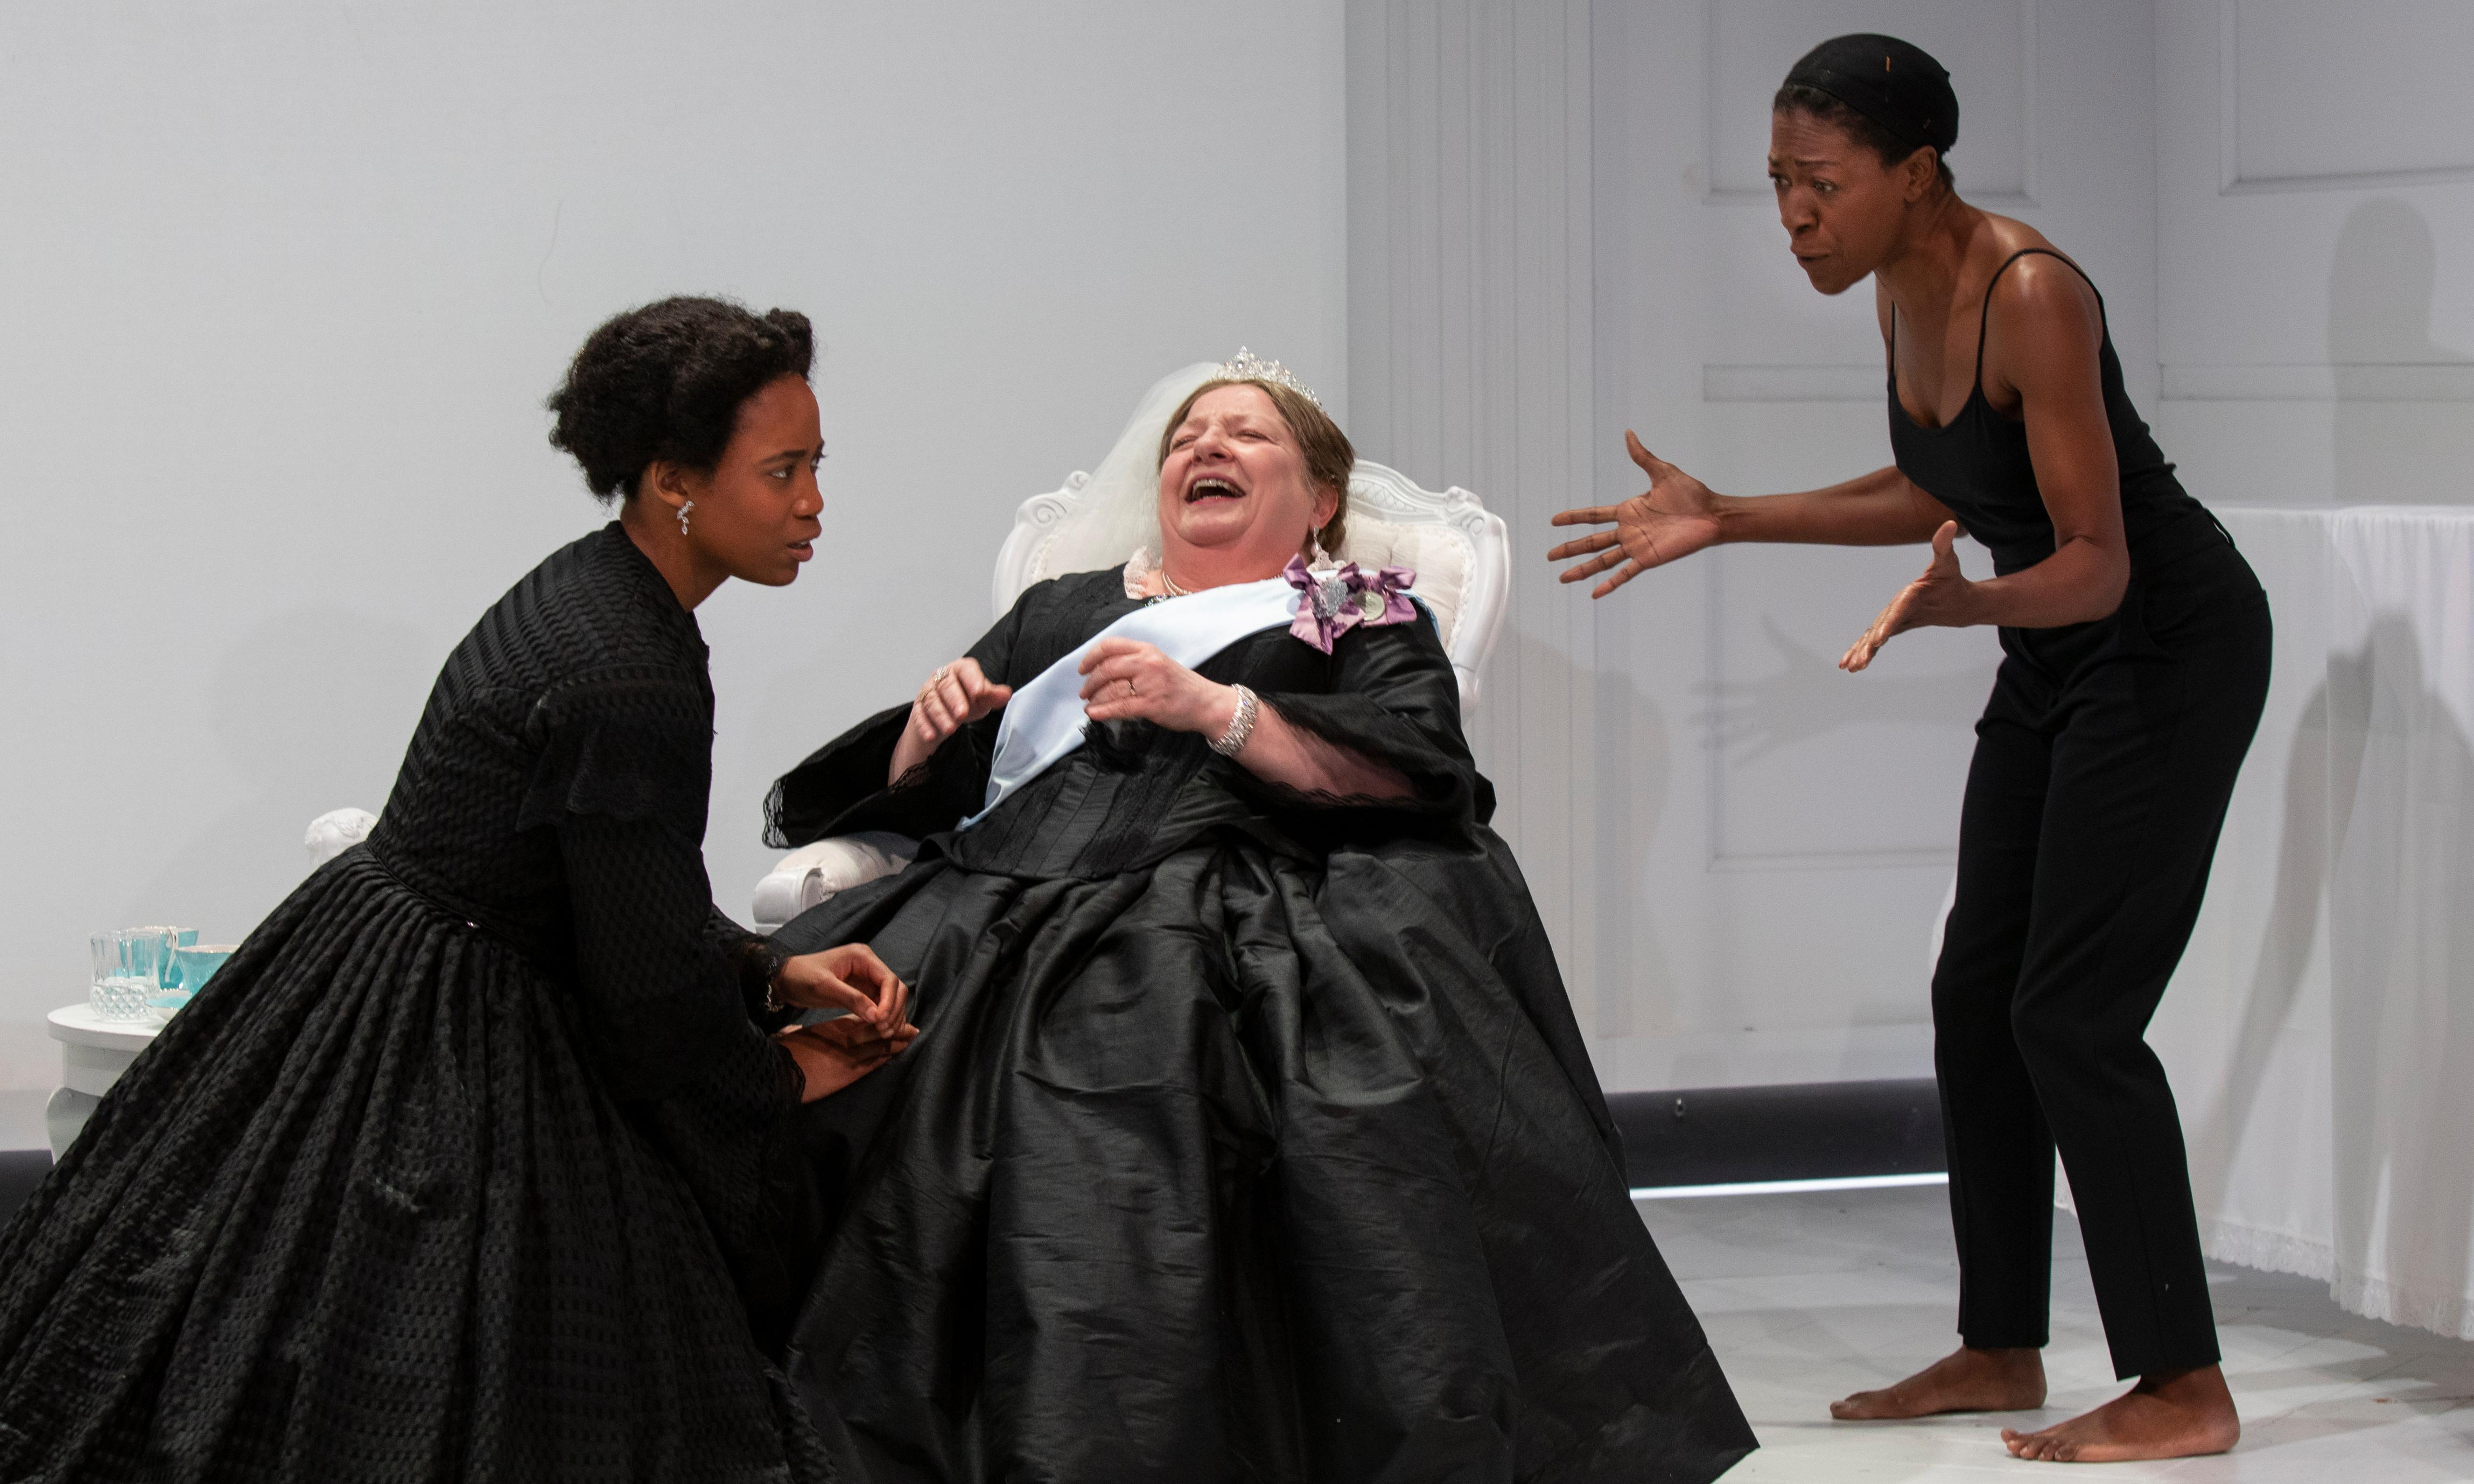 The Gift review – a deft portrayal of prejudice